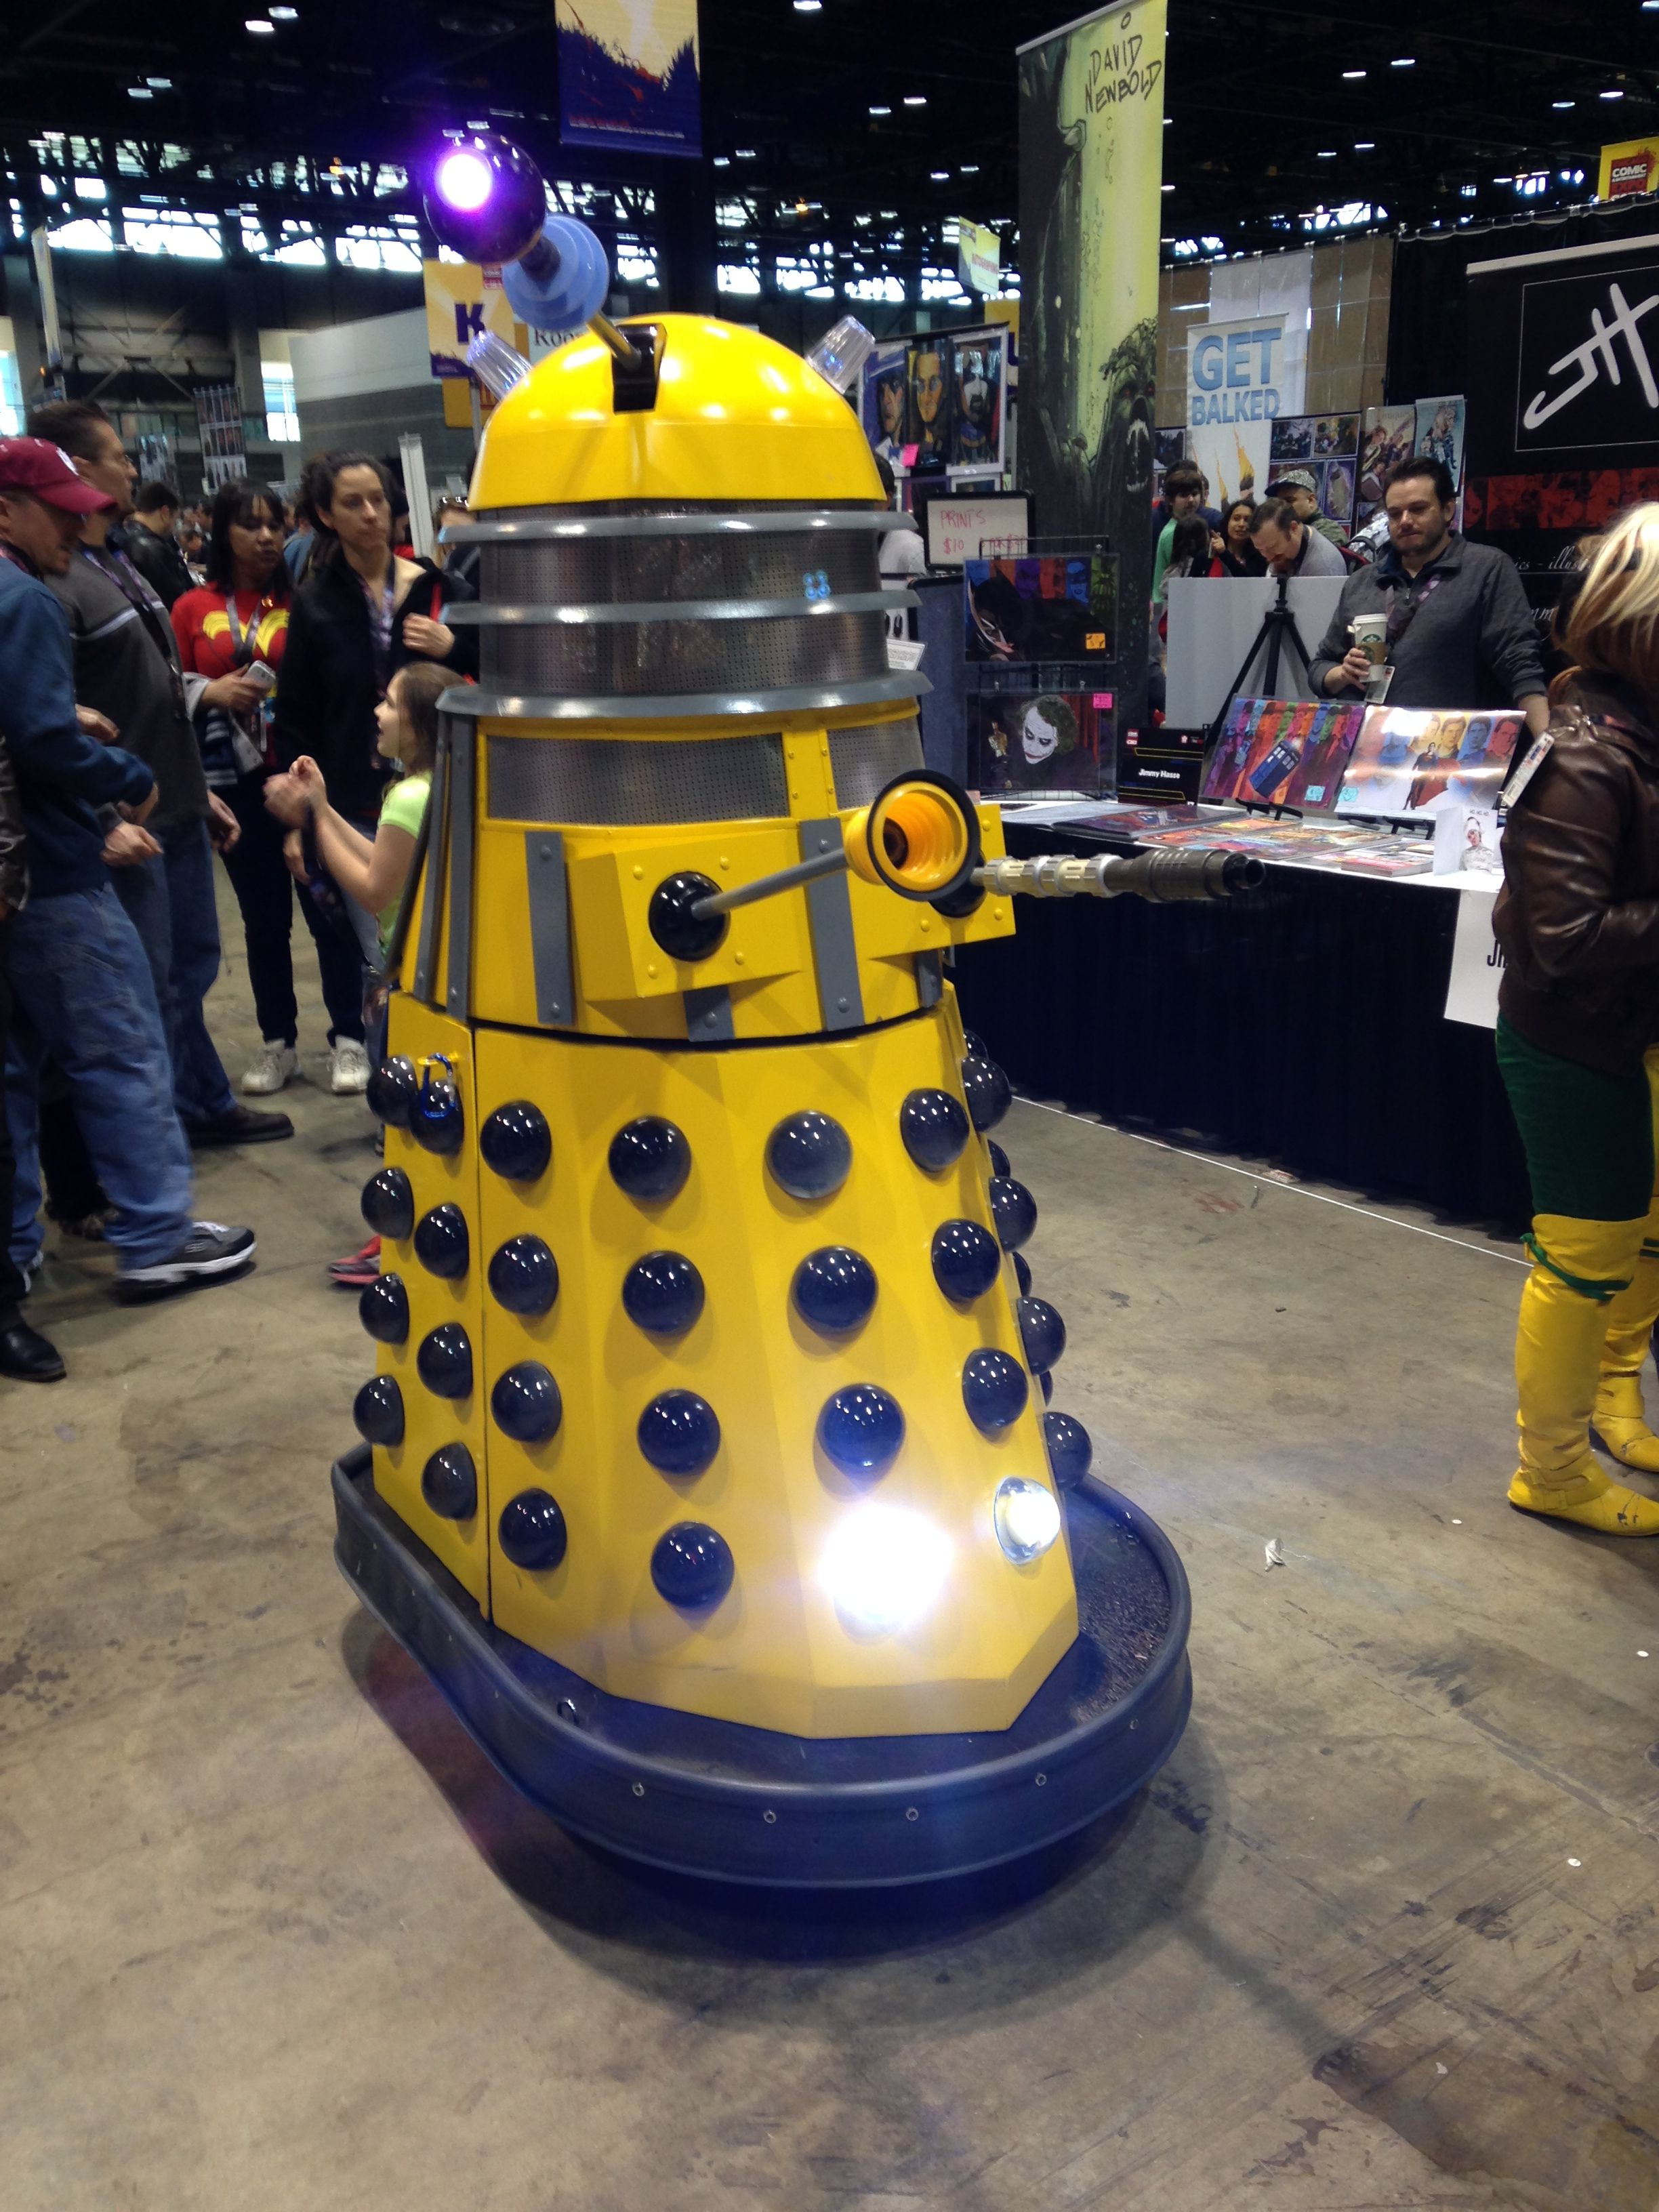 Robotic Dalek running around the show floor.